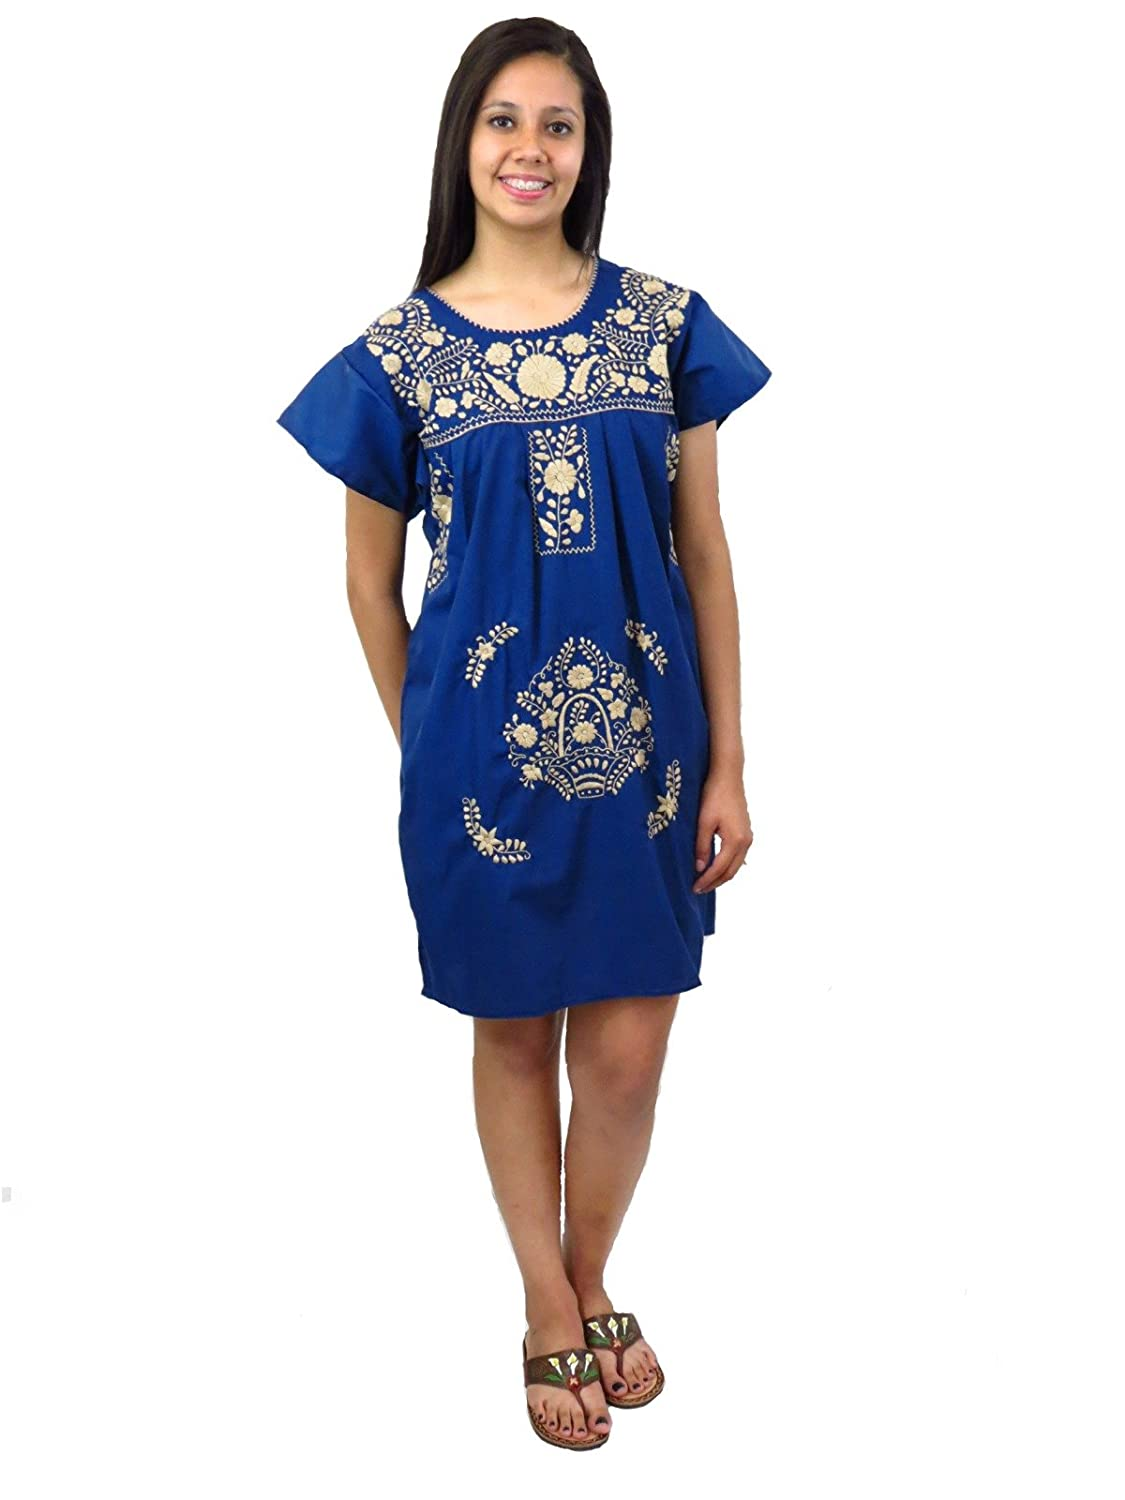 Embroidered Navy Blue Mexican Puebla Tunic Dress - DeluxeAdultCostumes.com